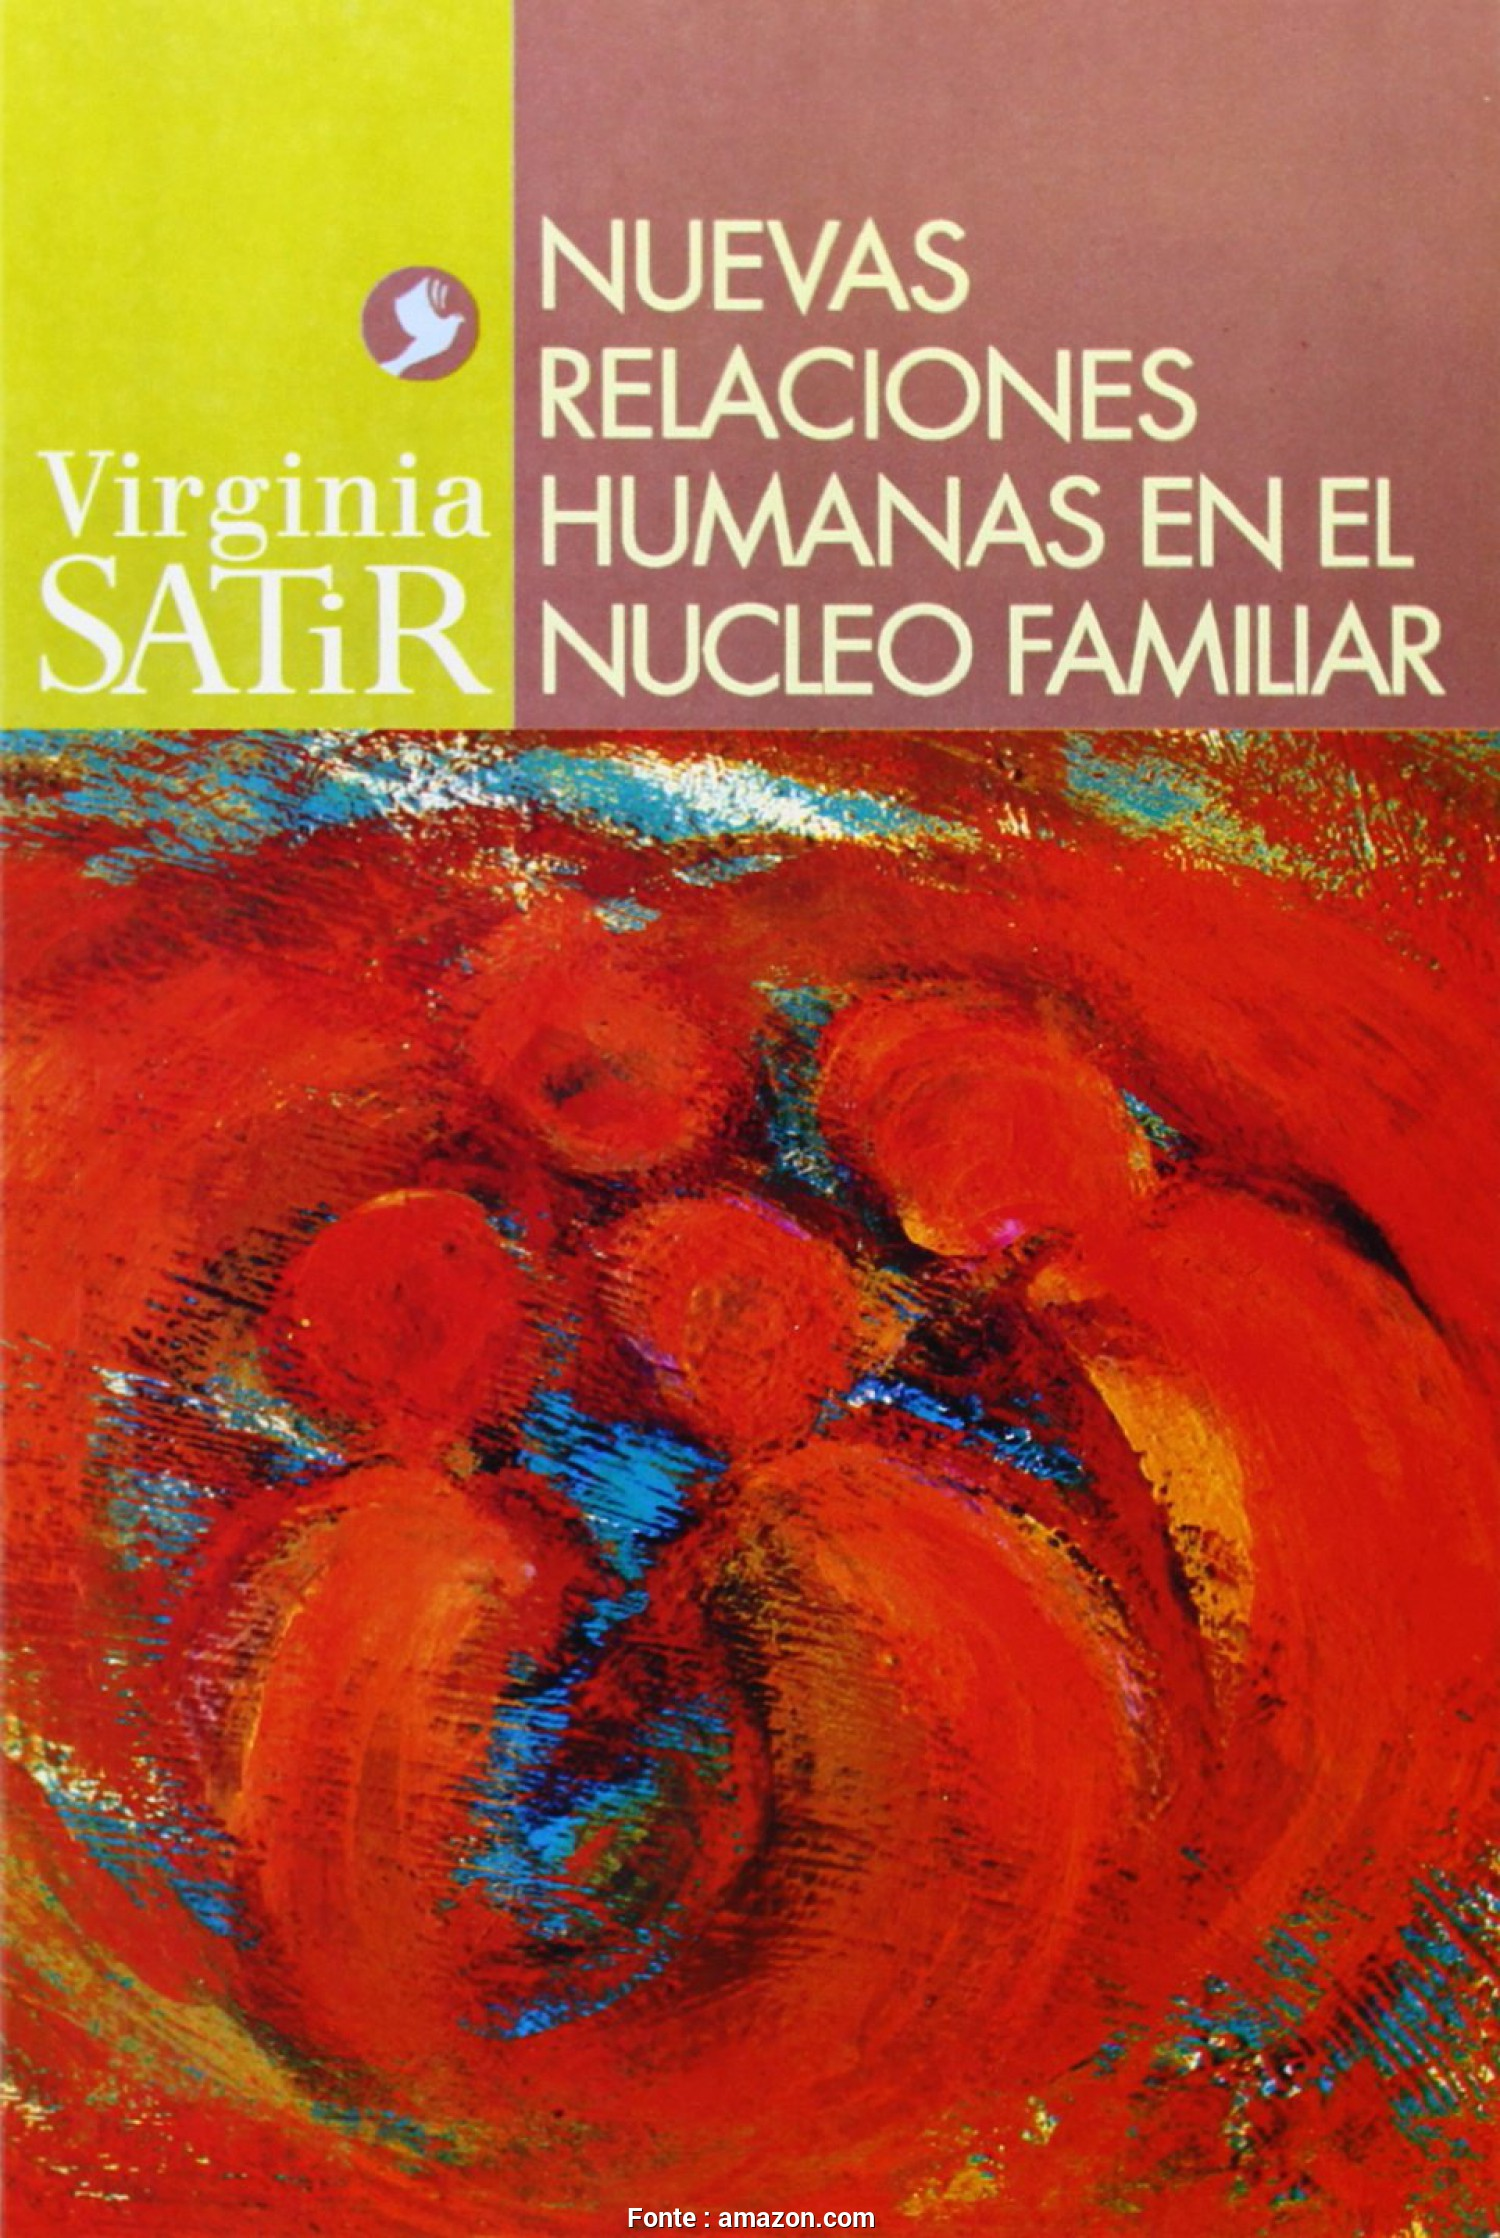 Copridivano Etnico Amazon, Sbalorditivo Nuevas Relaciones Humanas En El Nucleo Familiar (Virginia Satir Series) Paperback, November 1, 2005